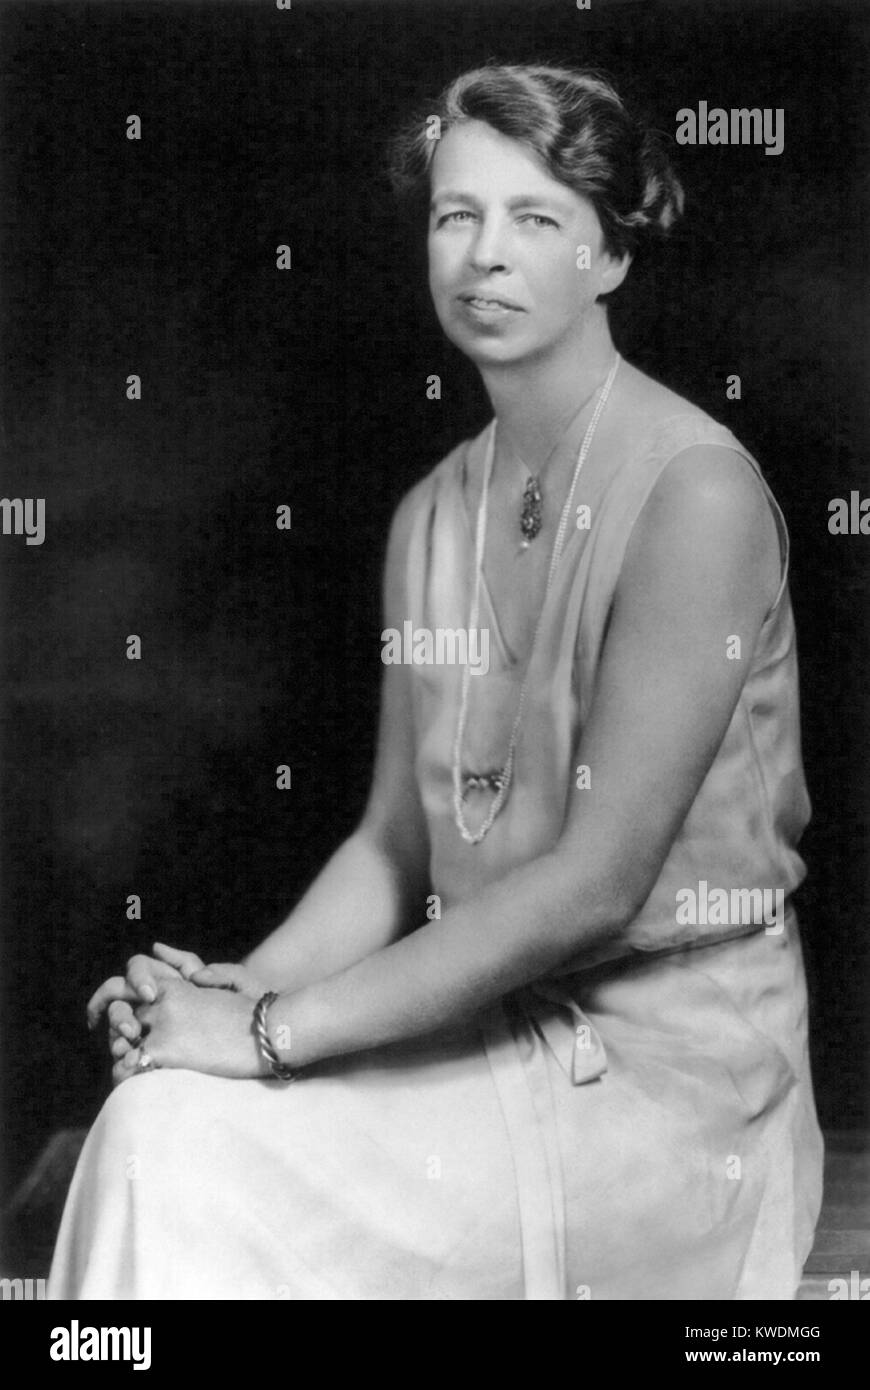 Anna Eleanor Roosevelt, American politician and wife of President Franklin D. Roosevelt - Stock Image